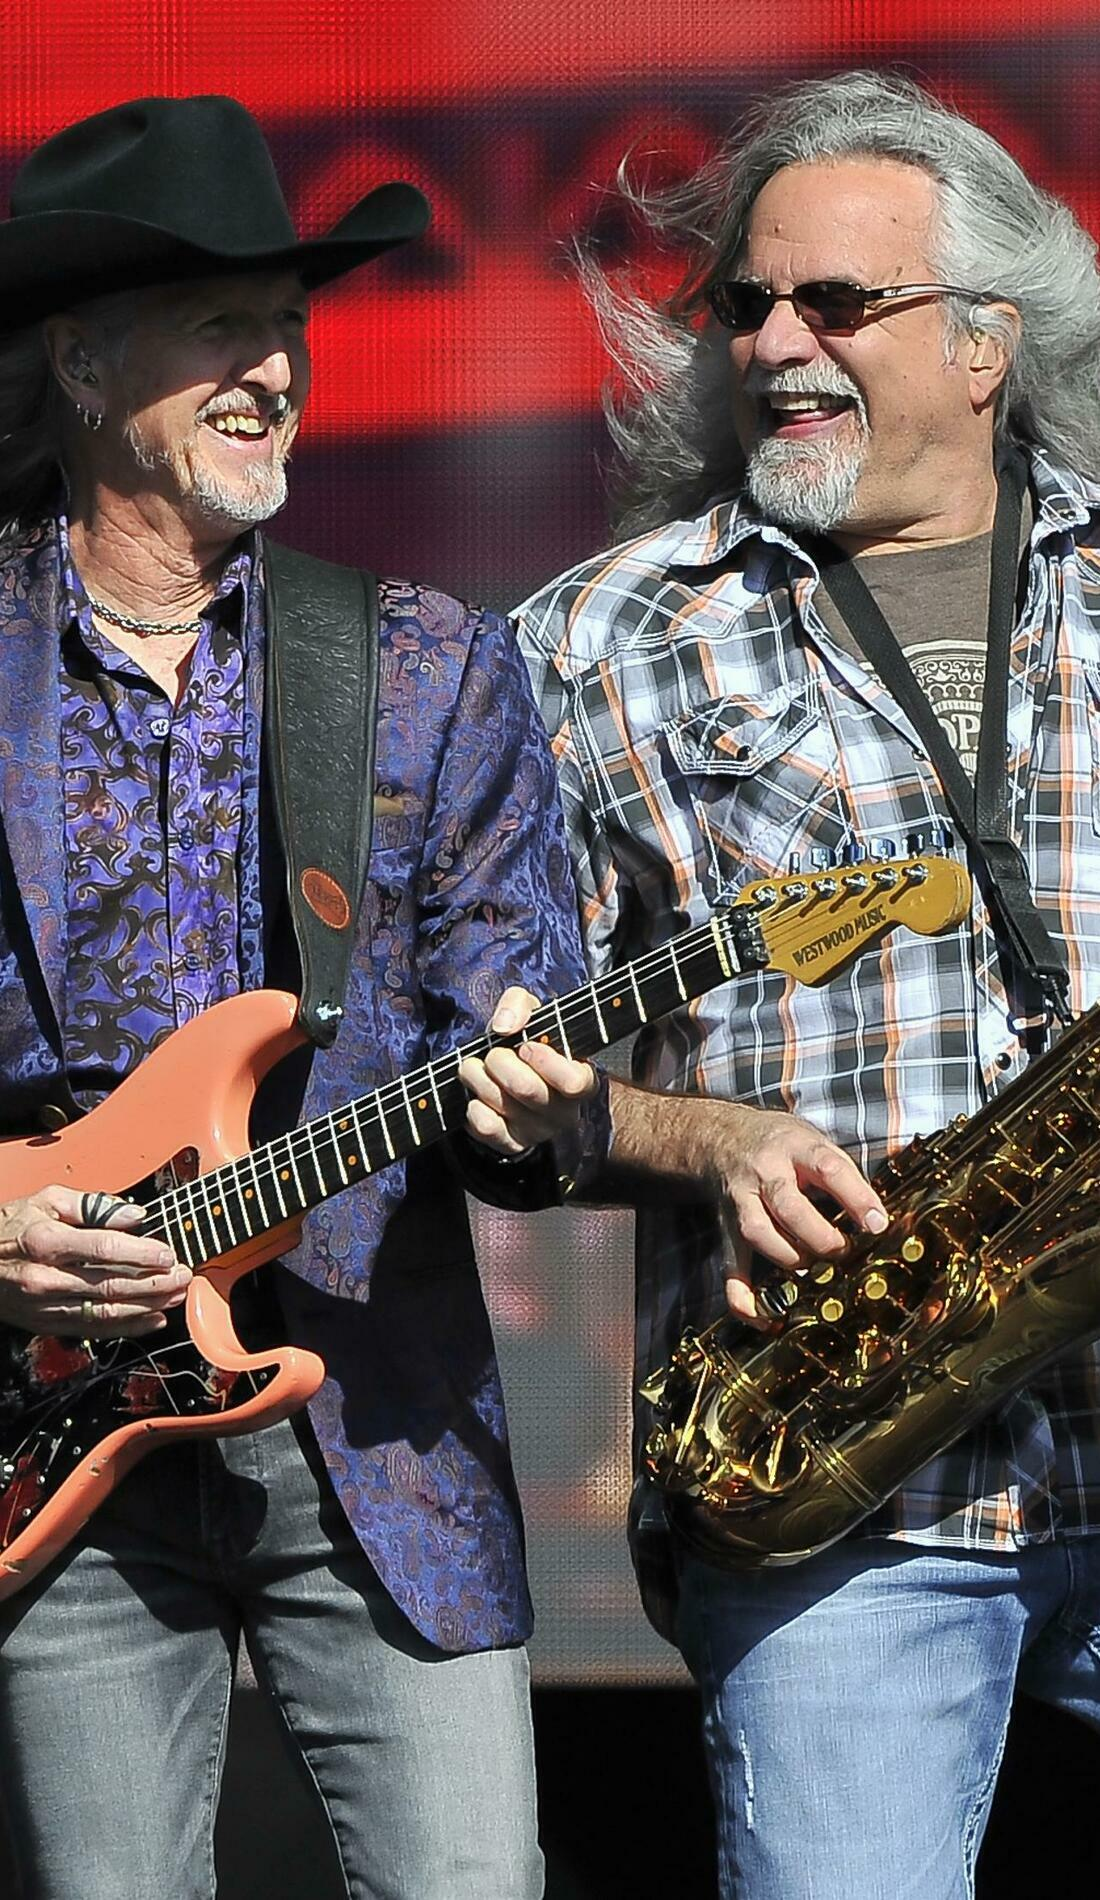 A The Doobie Brothers live event